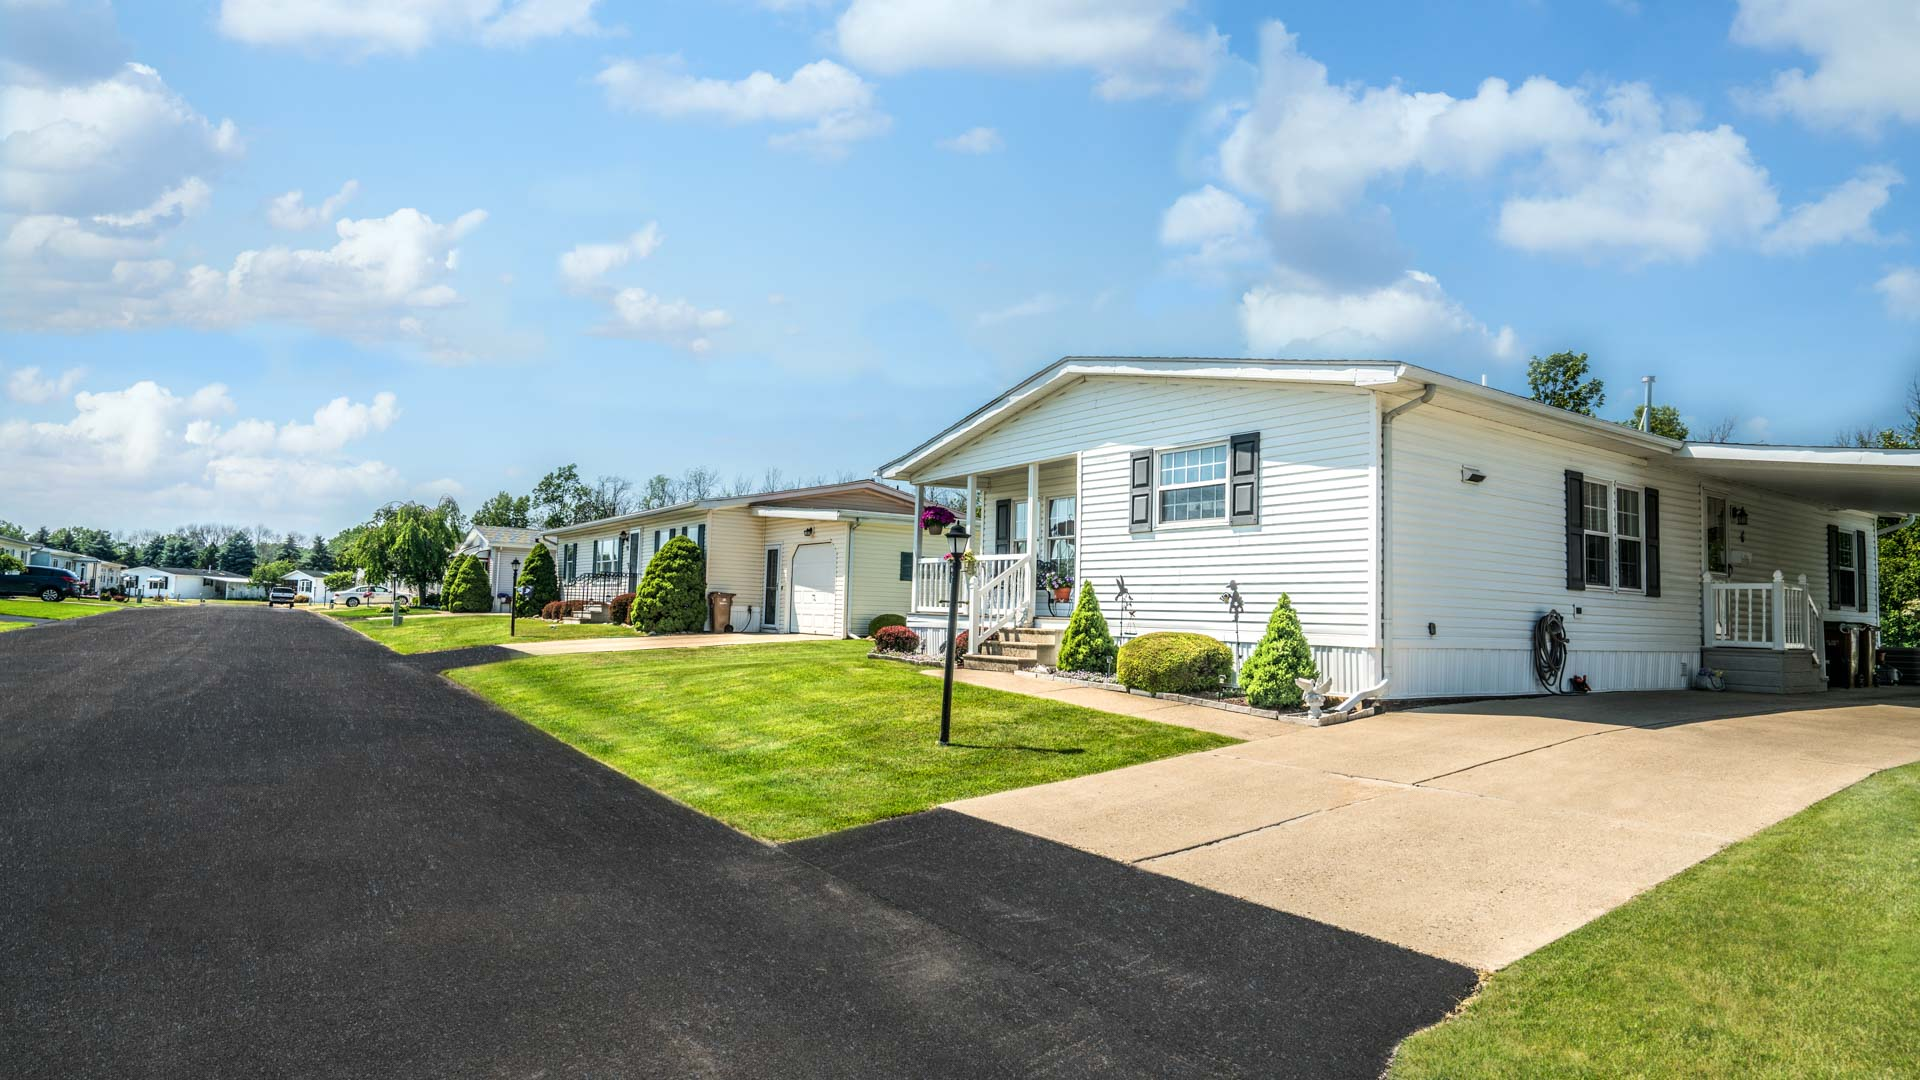 Parkside Village 55+ Manufactured Homes Community Street View in Buffalo, NY